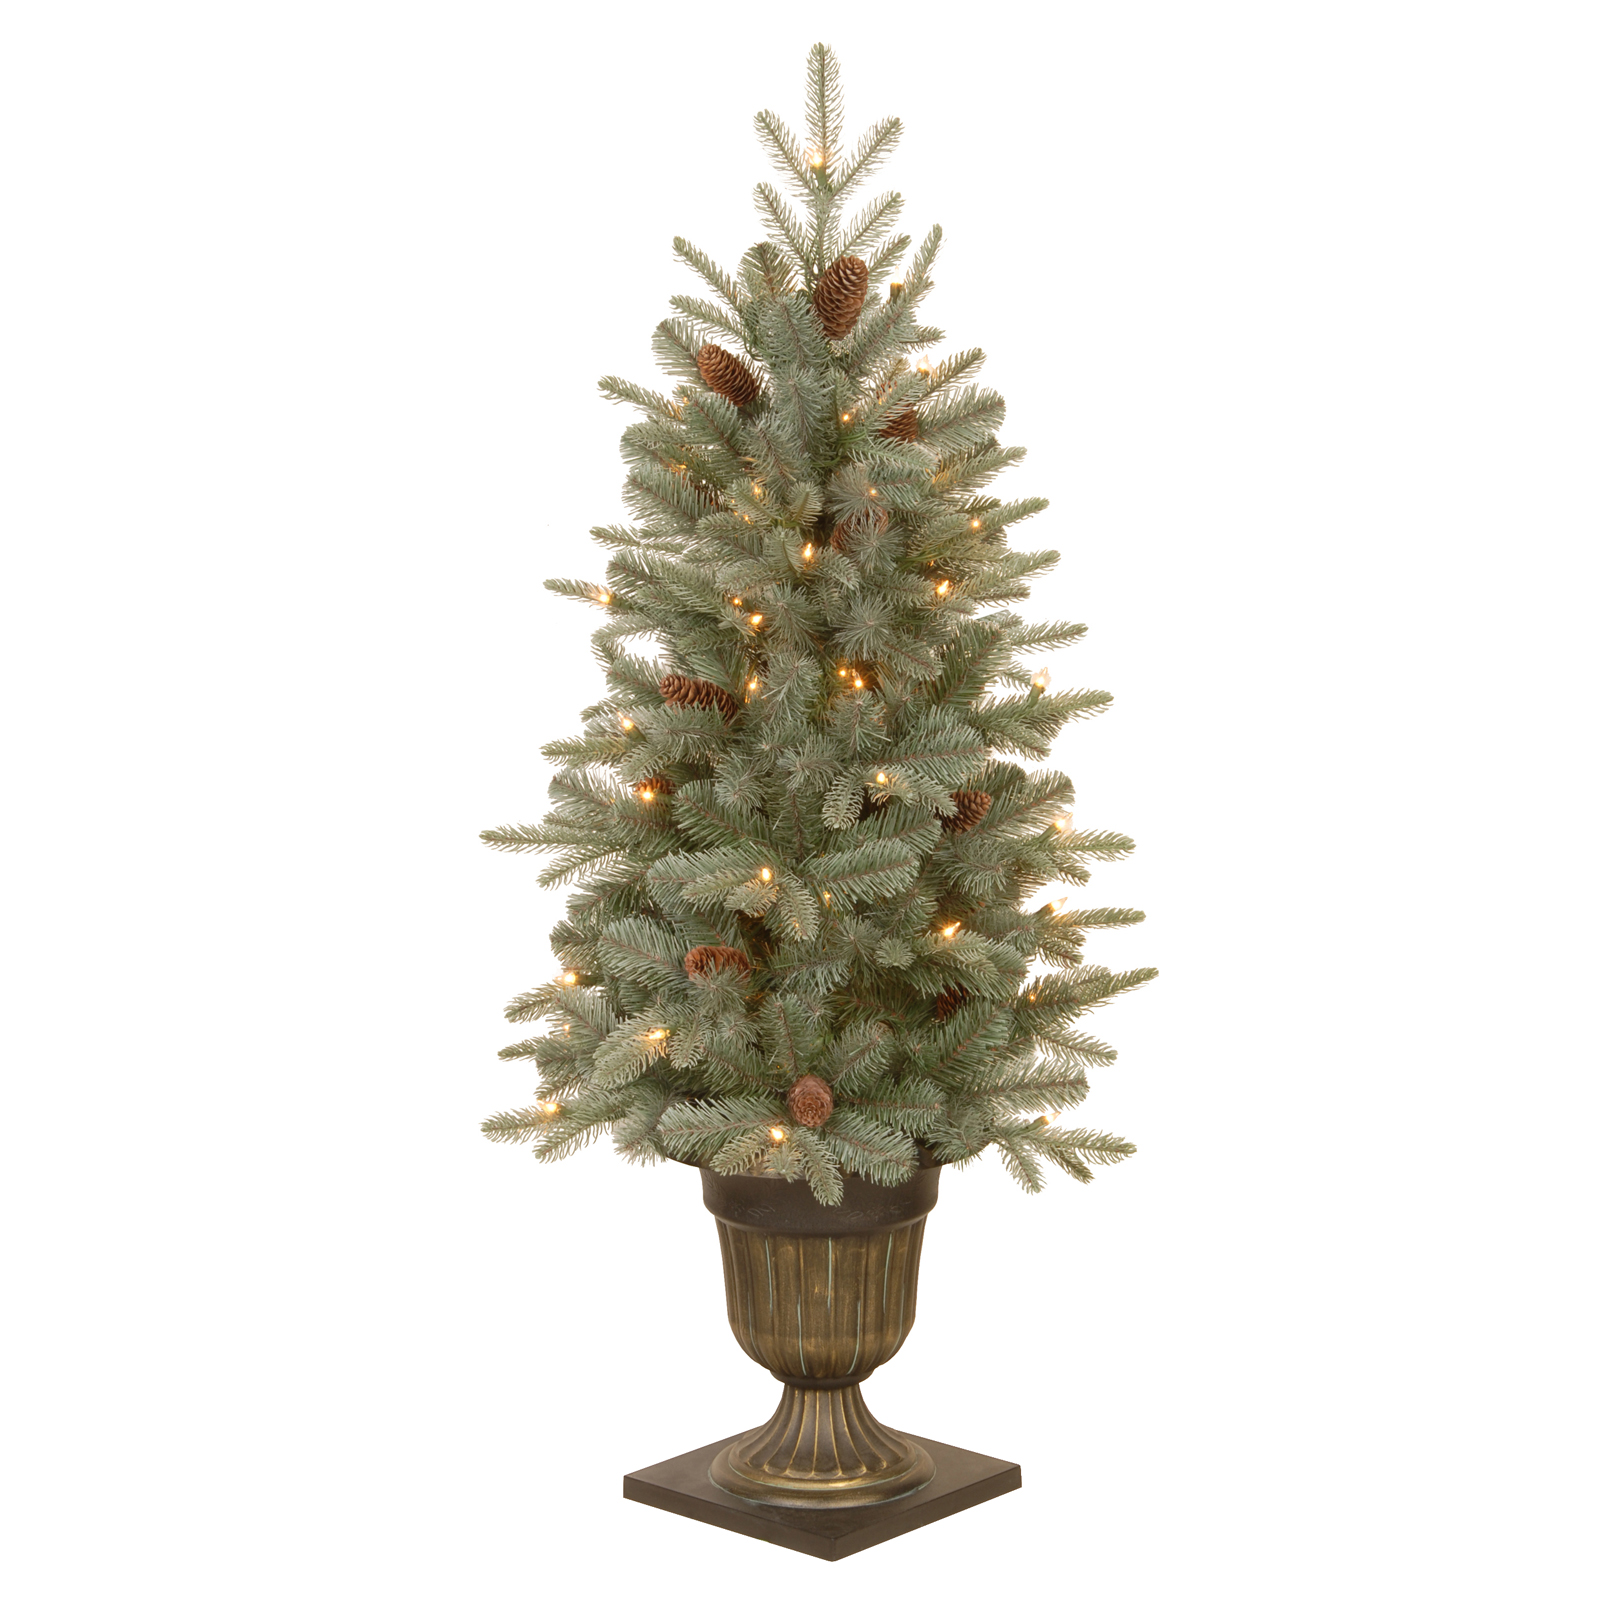 Frosted Slim Christmas Tree: 4 Ft. Feel-Real Frosted Artic Spruce Pine Pre-lit Medium